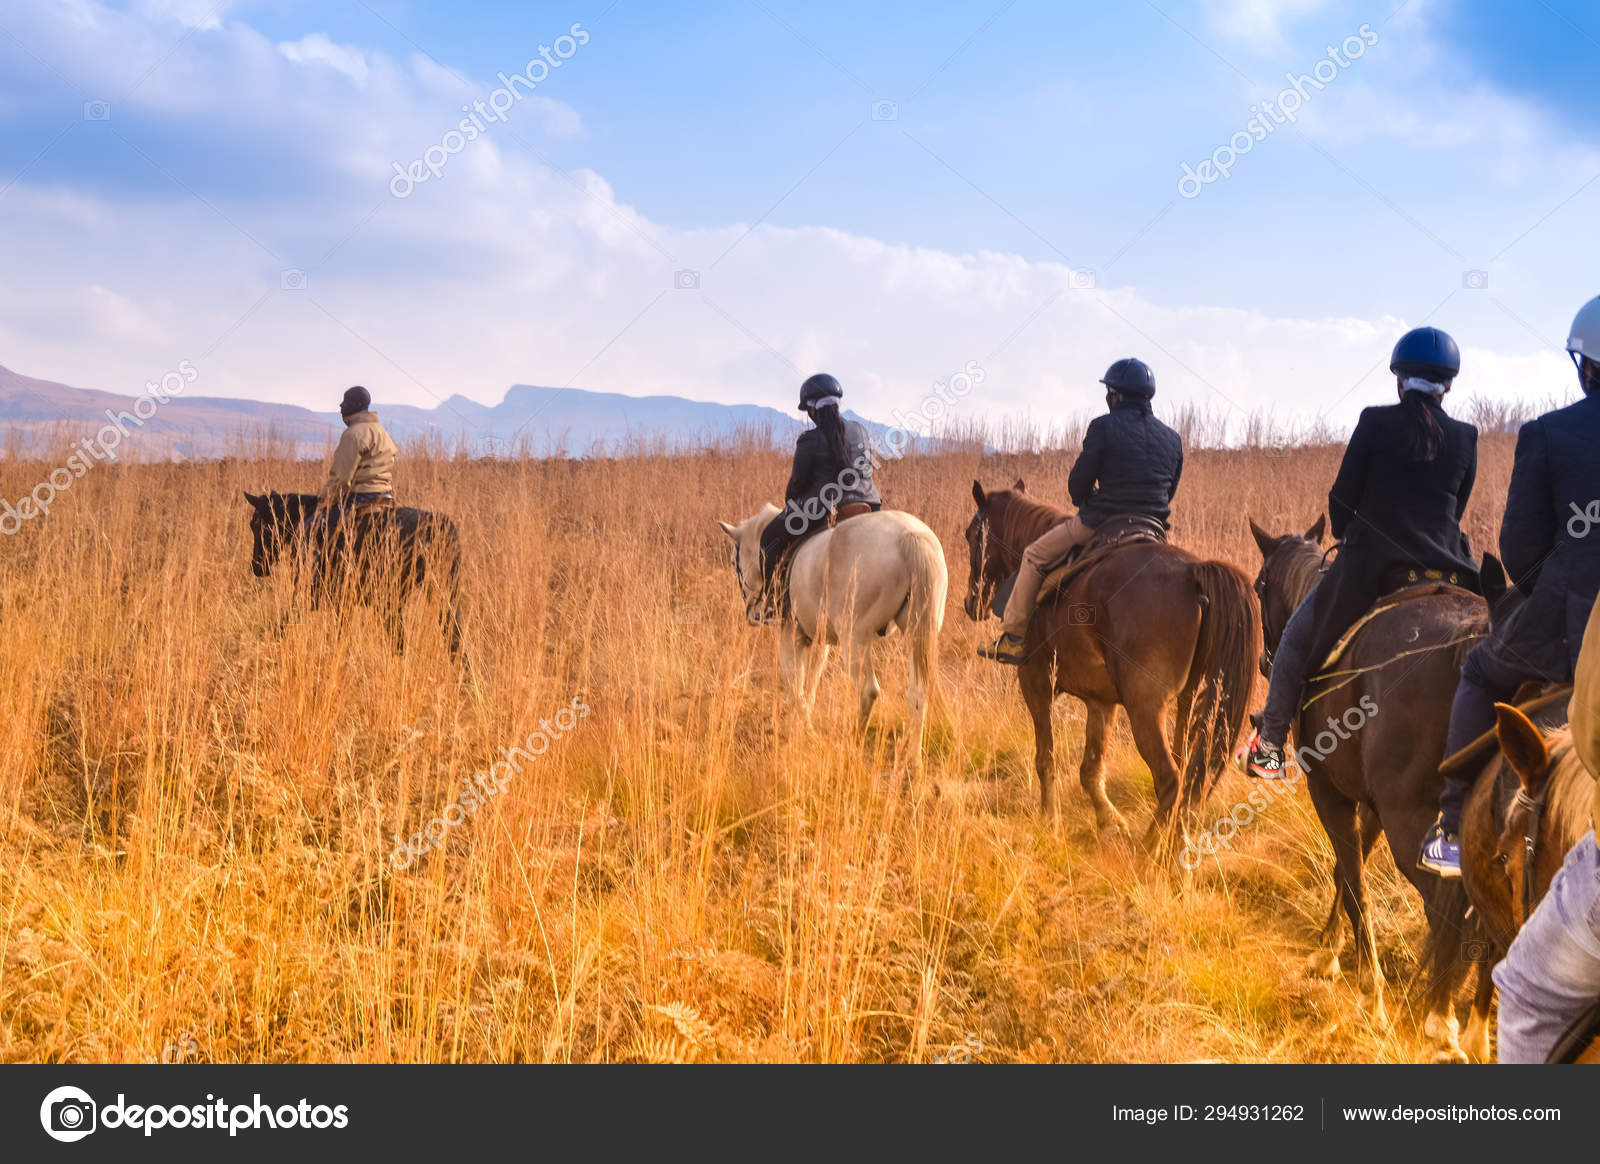 Group Of Indian Horse Riding Riders On A Trail In Drakensberg Re Stock Photo C Shamsamir 294931262